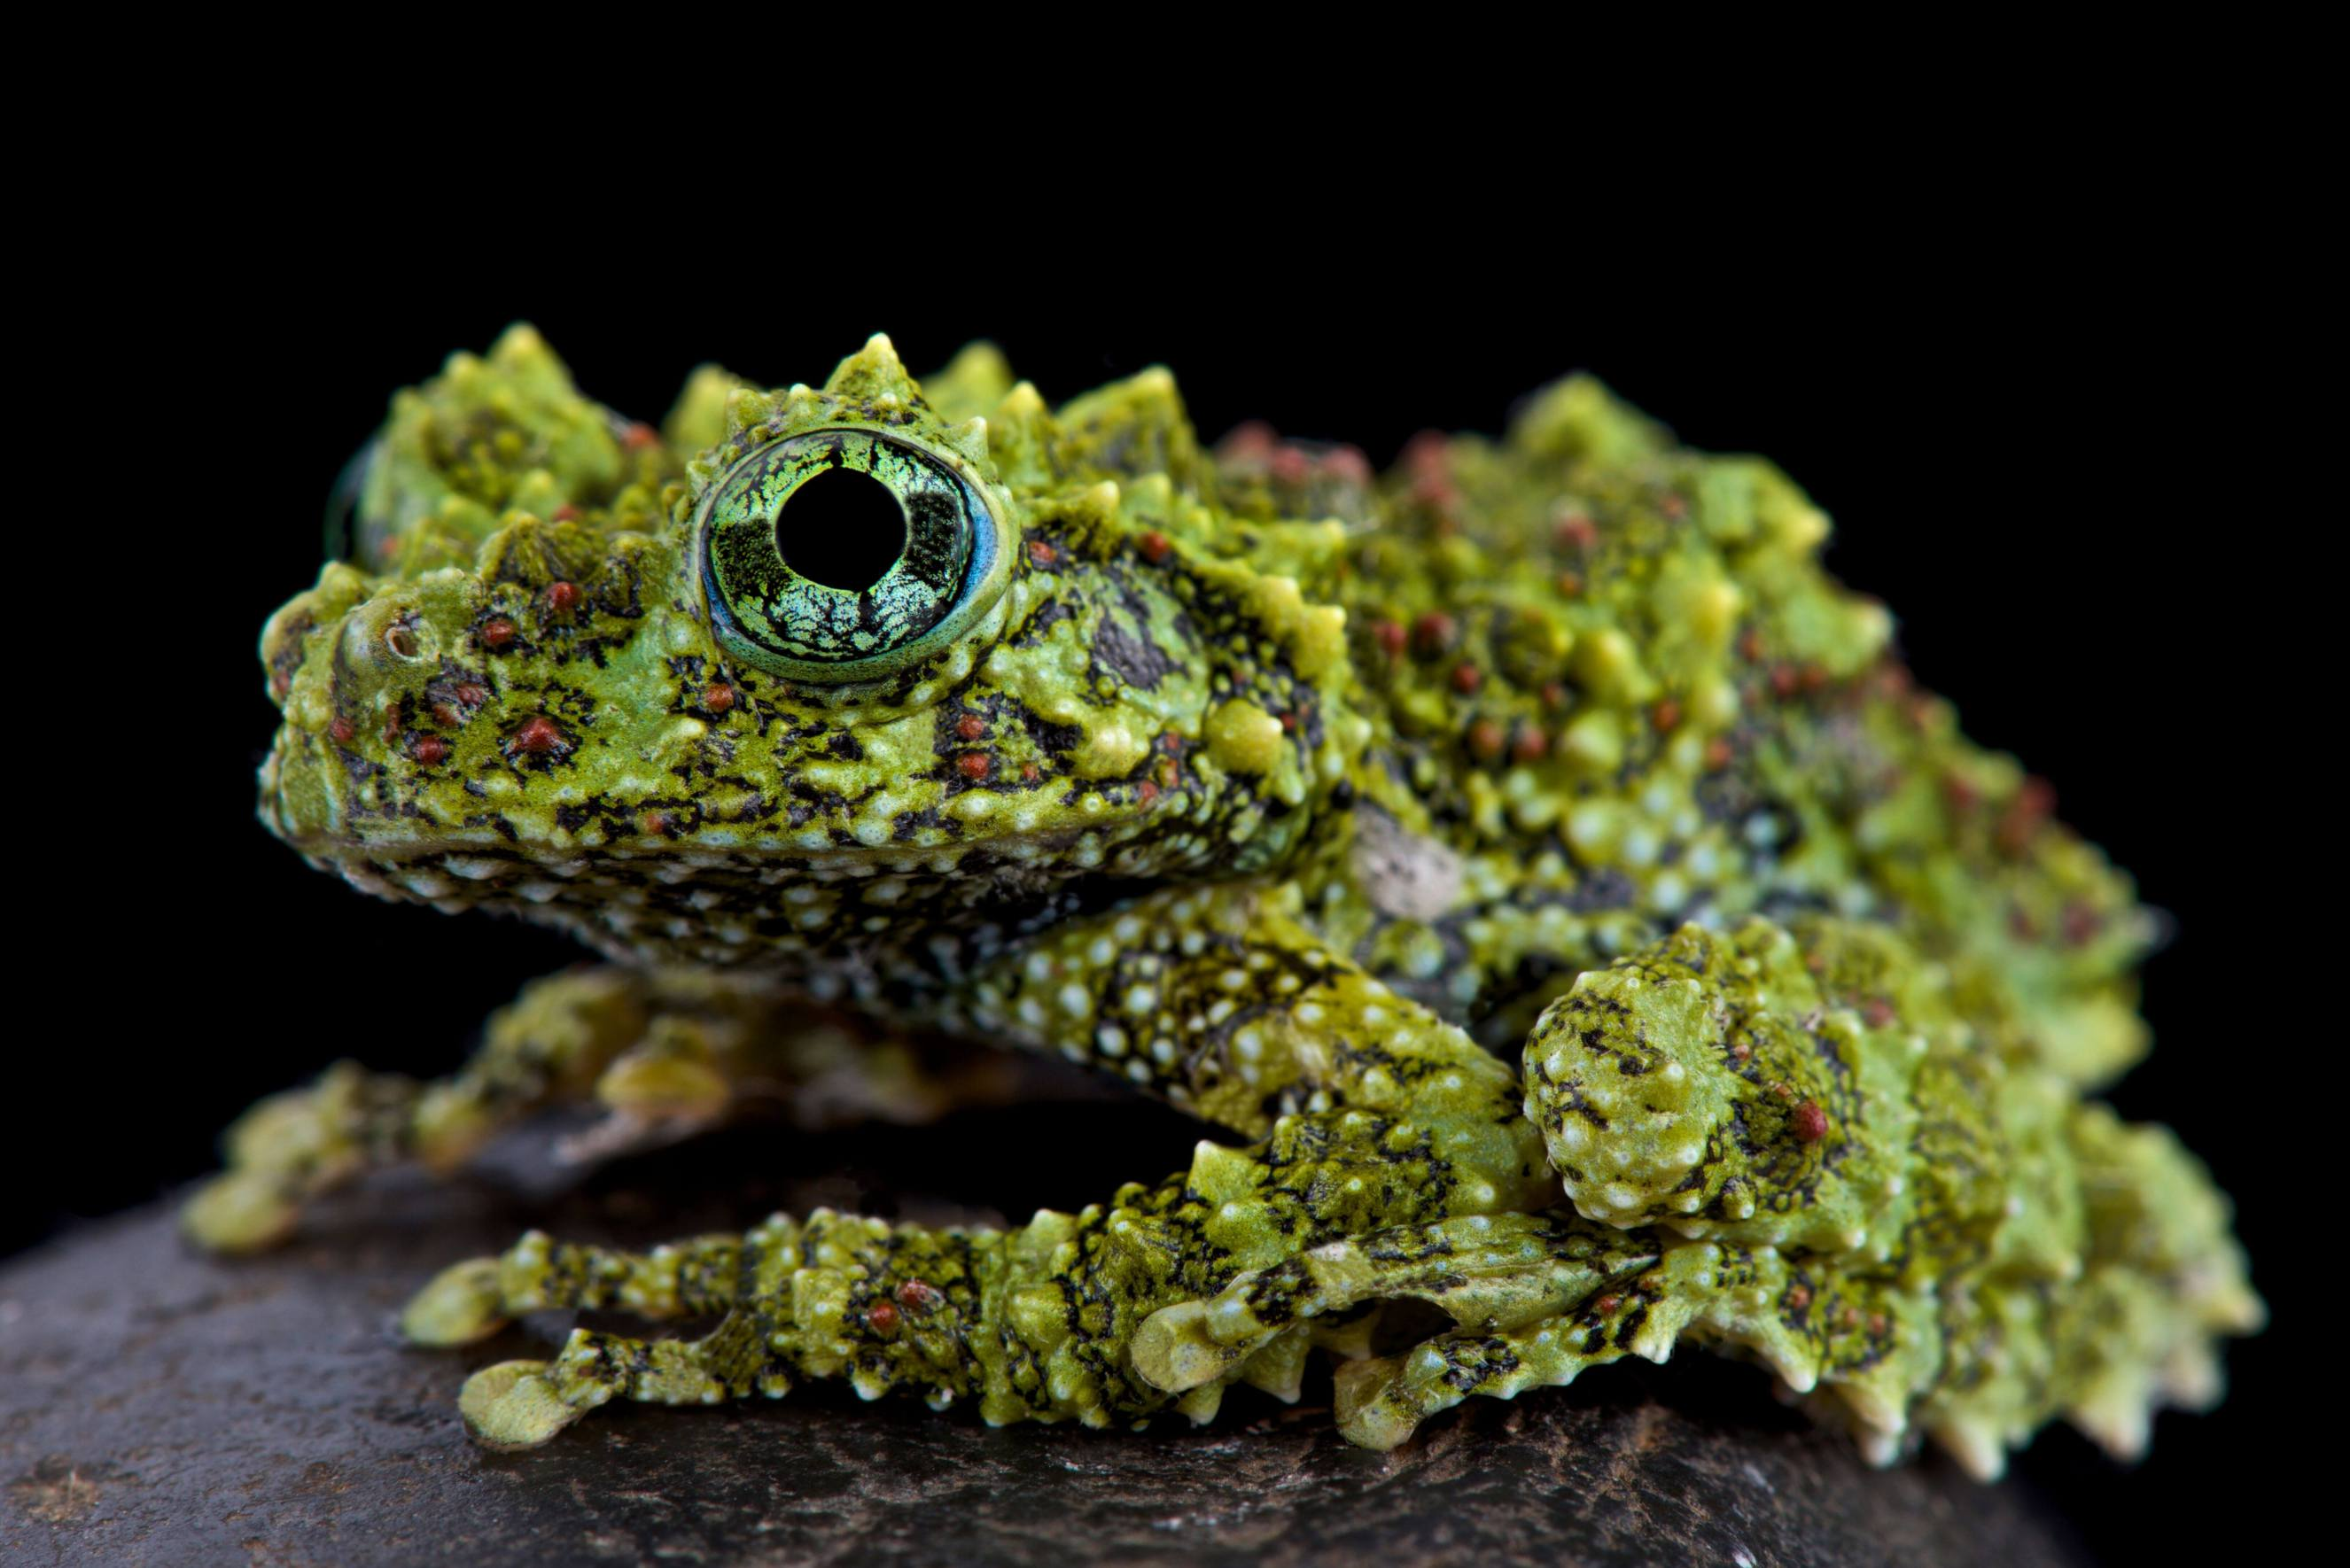 A picture of a Mossy Frog